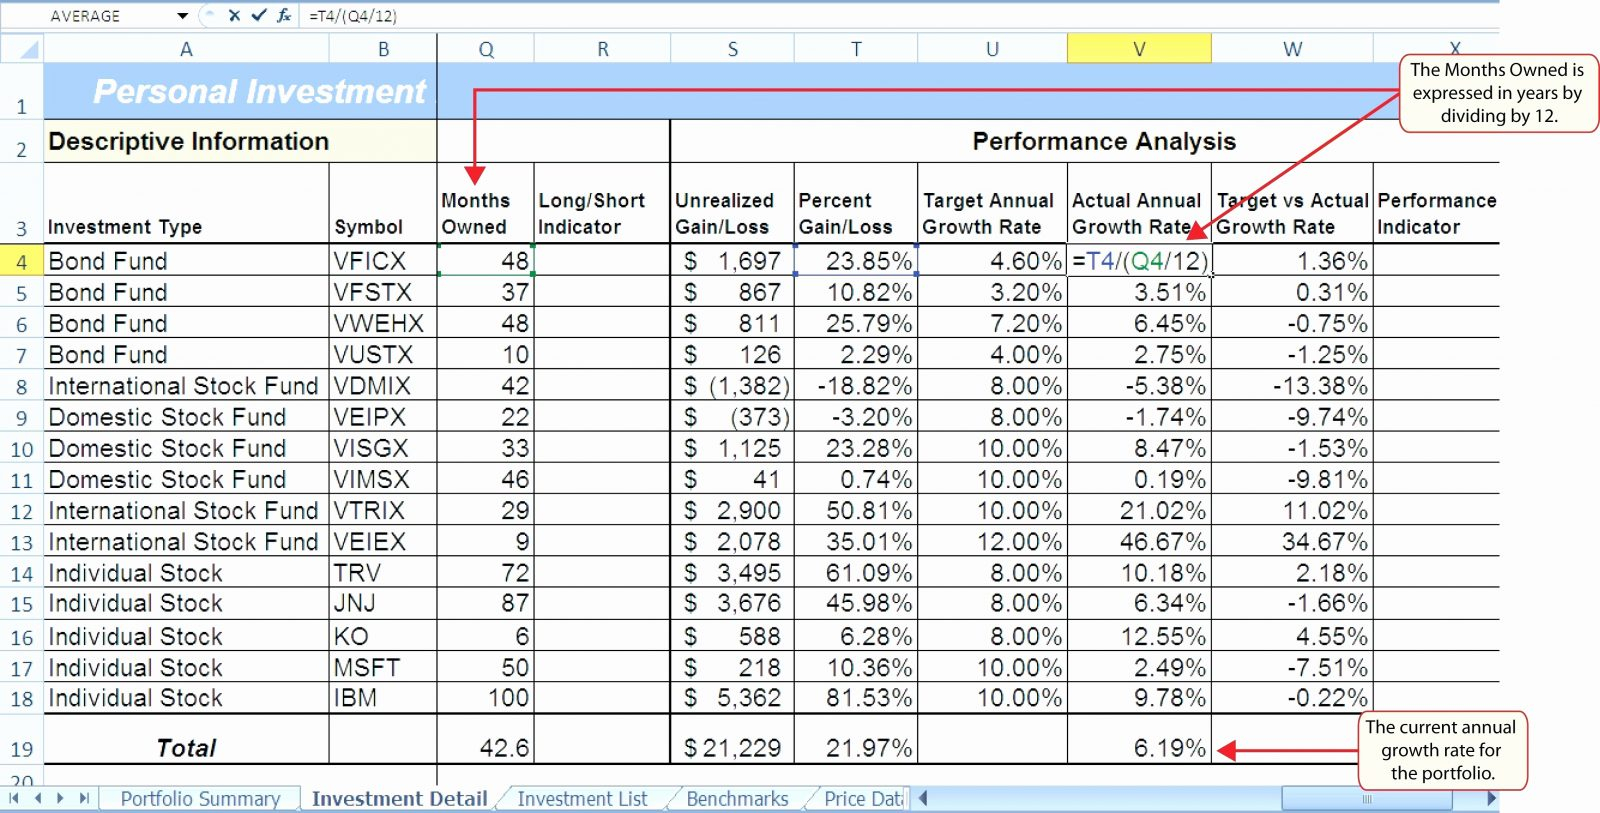 Example Of Food Cost Inventory Spreadsheet Menu Recipe | Pianotreasure within Food Cost Inventory Spreadsheet